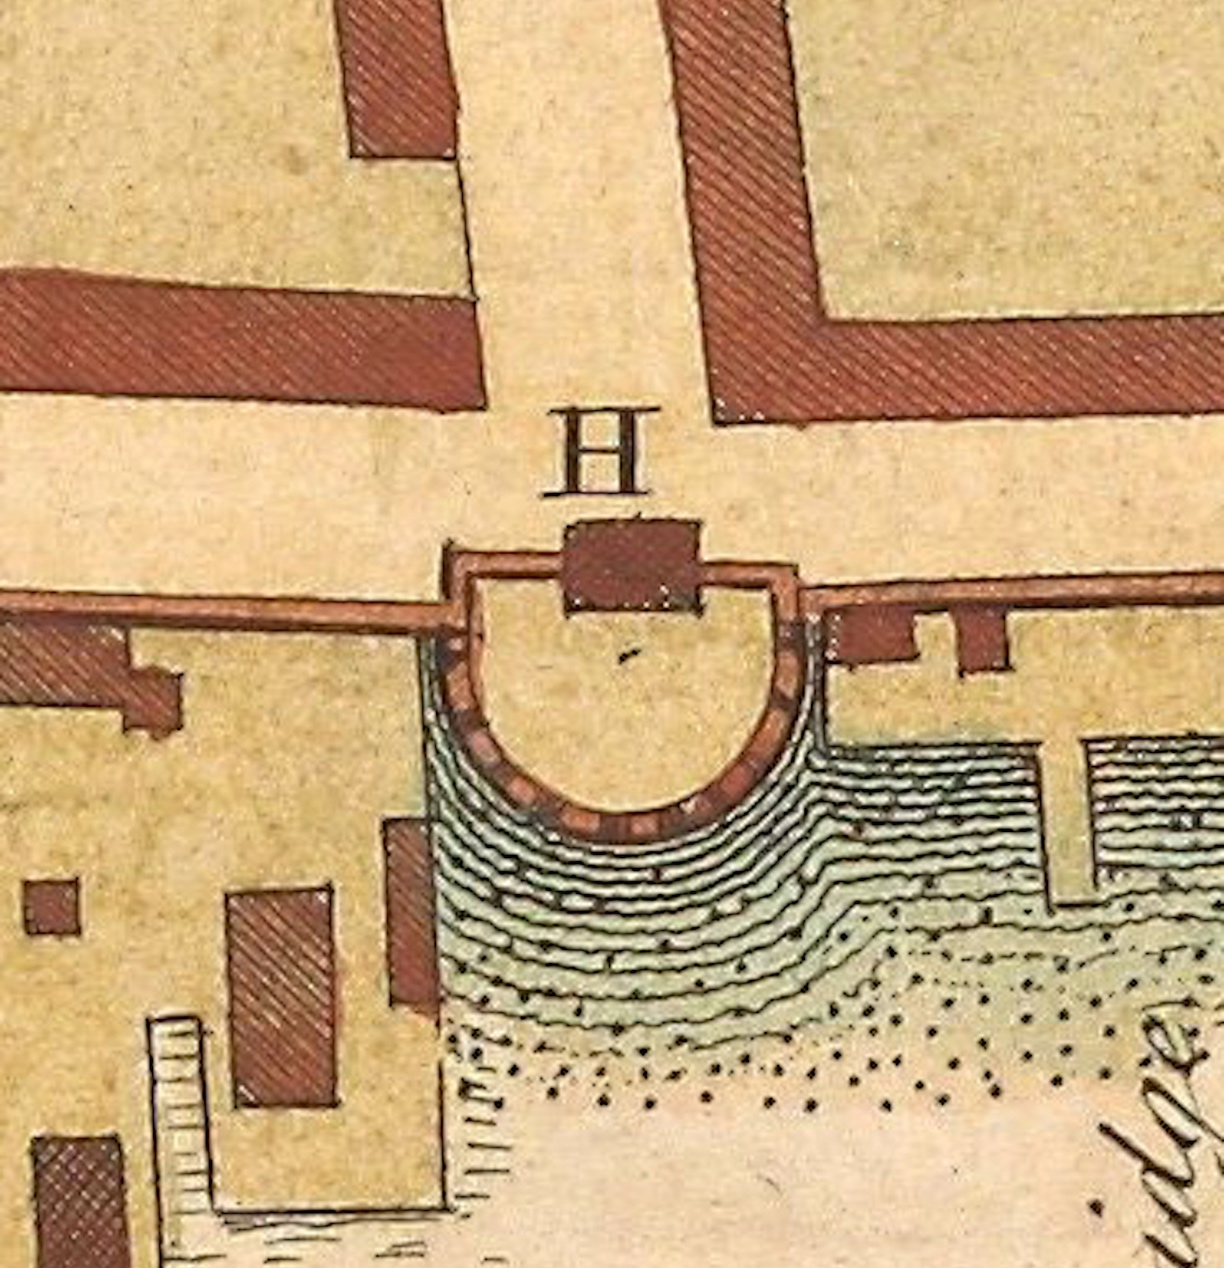 The 1739 Ichnography of Charleston Town showing a detail of Half Moon Battery.